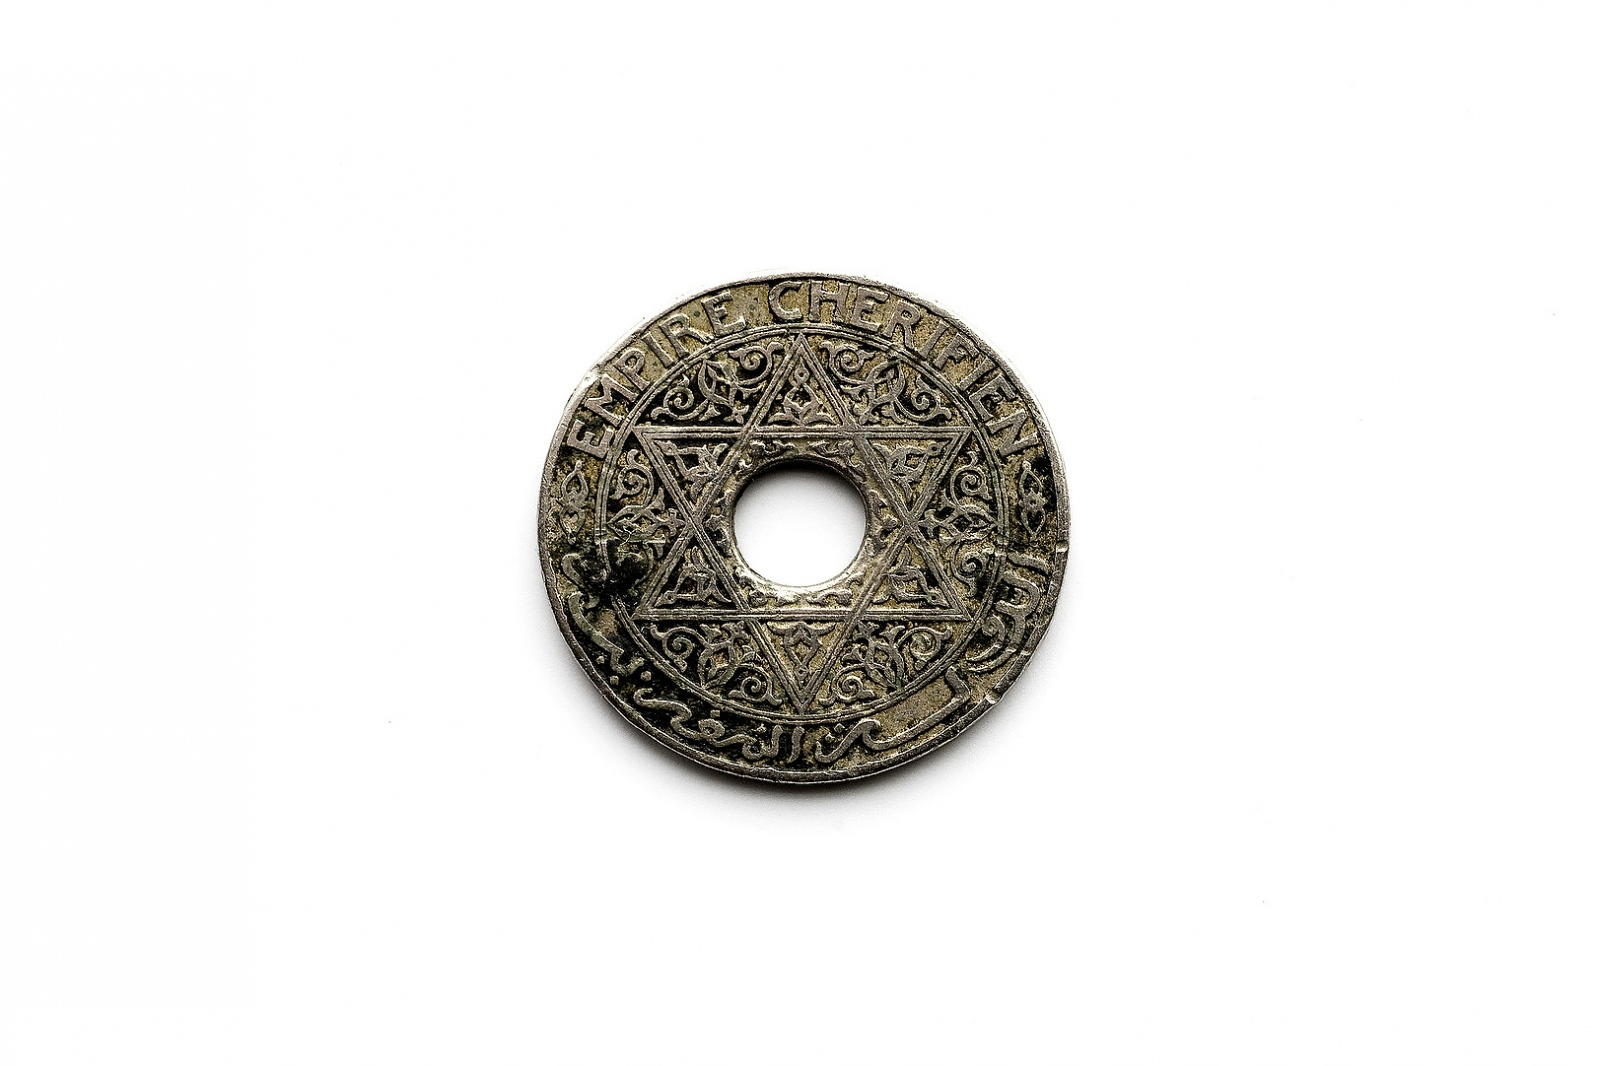 A Moroccan coin from the early 1900's. The star of David was used on Moroccan currency since the Merinid Dynasty in the 13th Century. It was replaced with the pentagram, representing the five pillars of Islam, by the occupying French government in 1915. It is thought that the change was due to rising anti-Semitism in Europe.